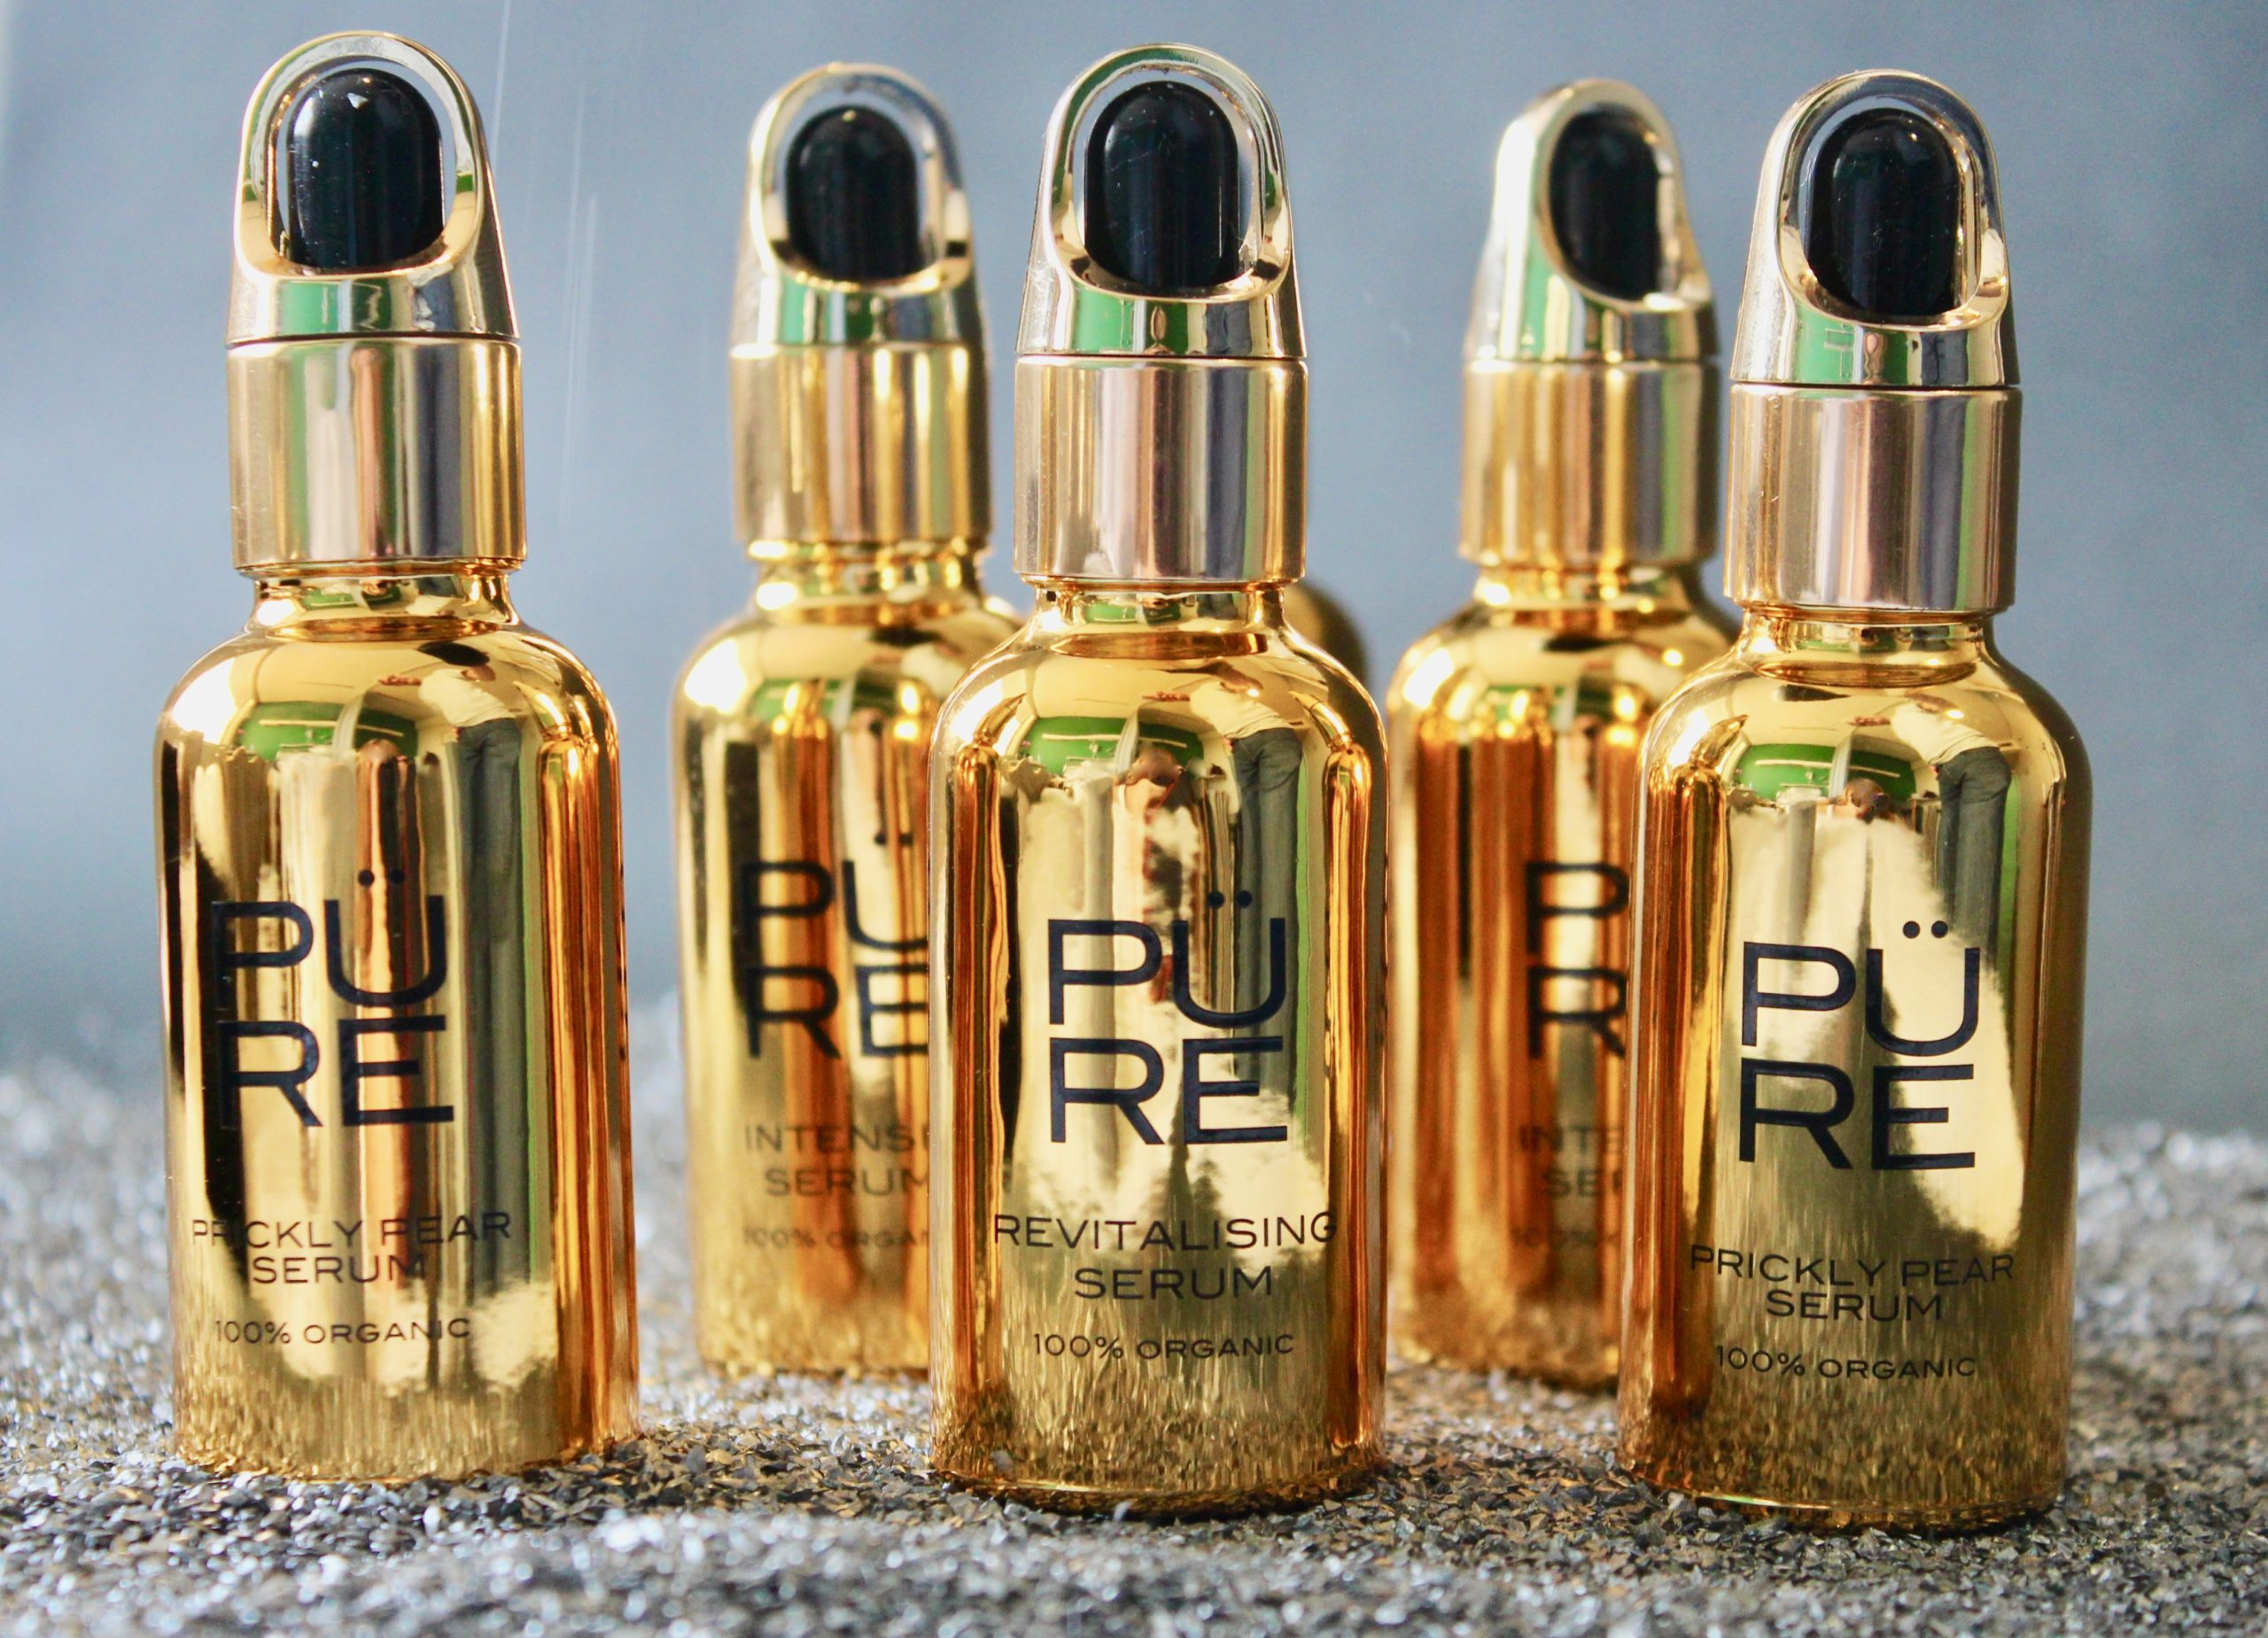 The PÜRE Collection explains the meaning of organic